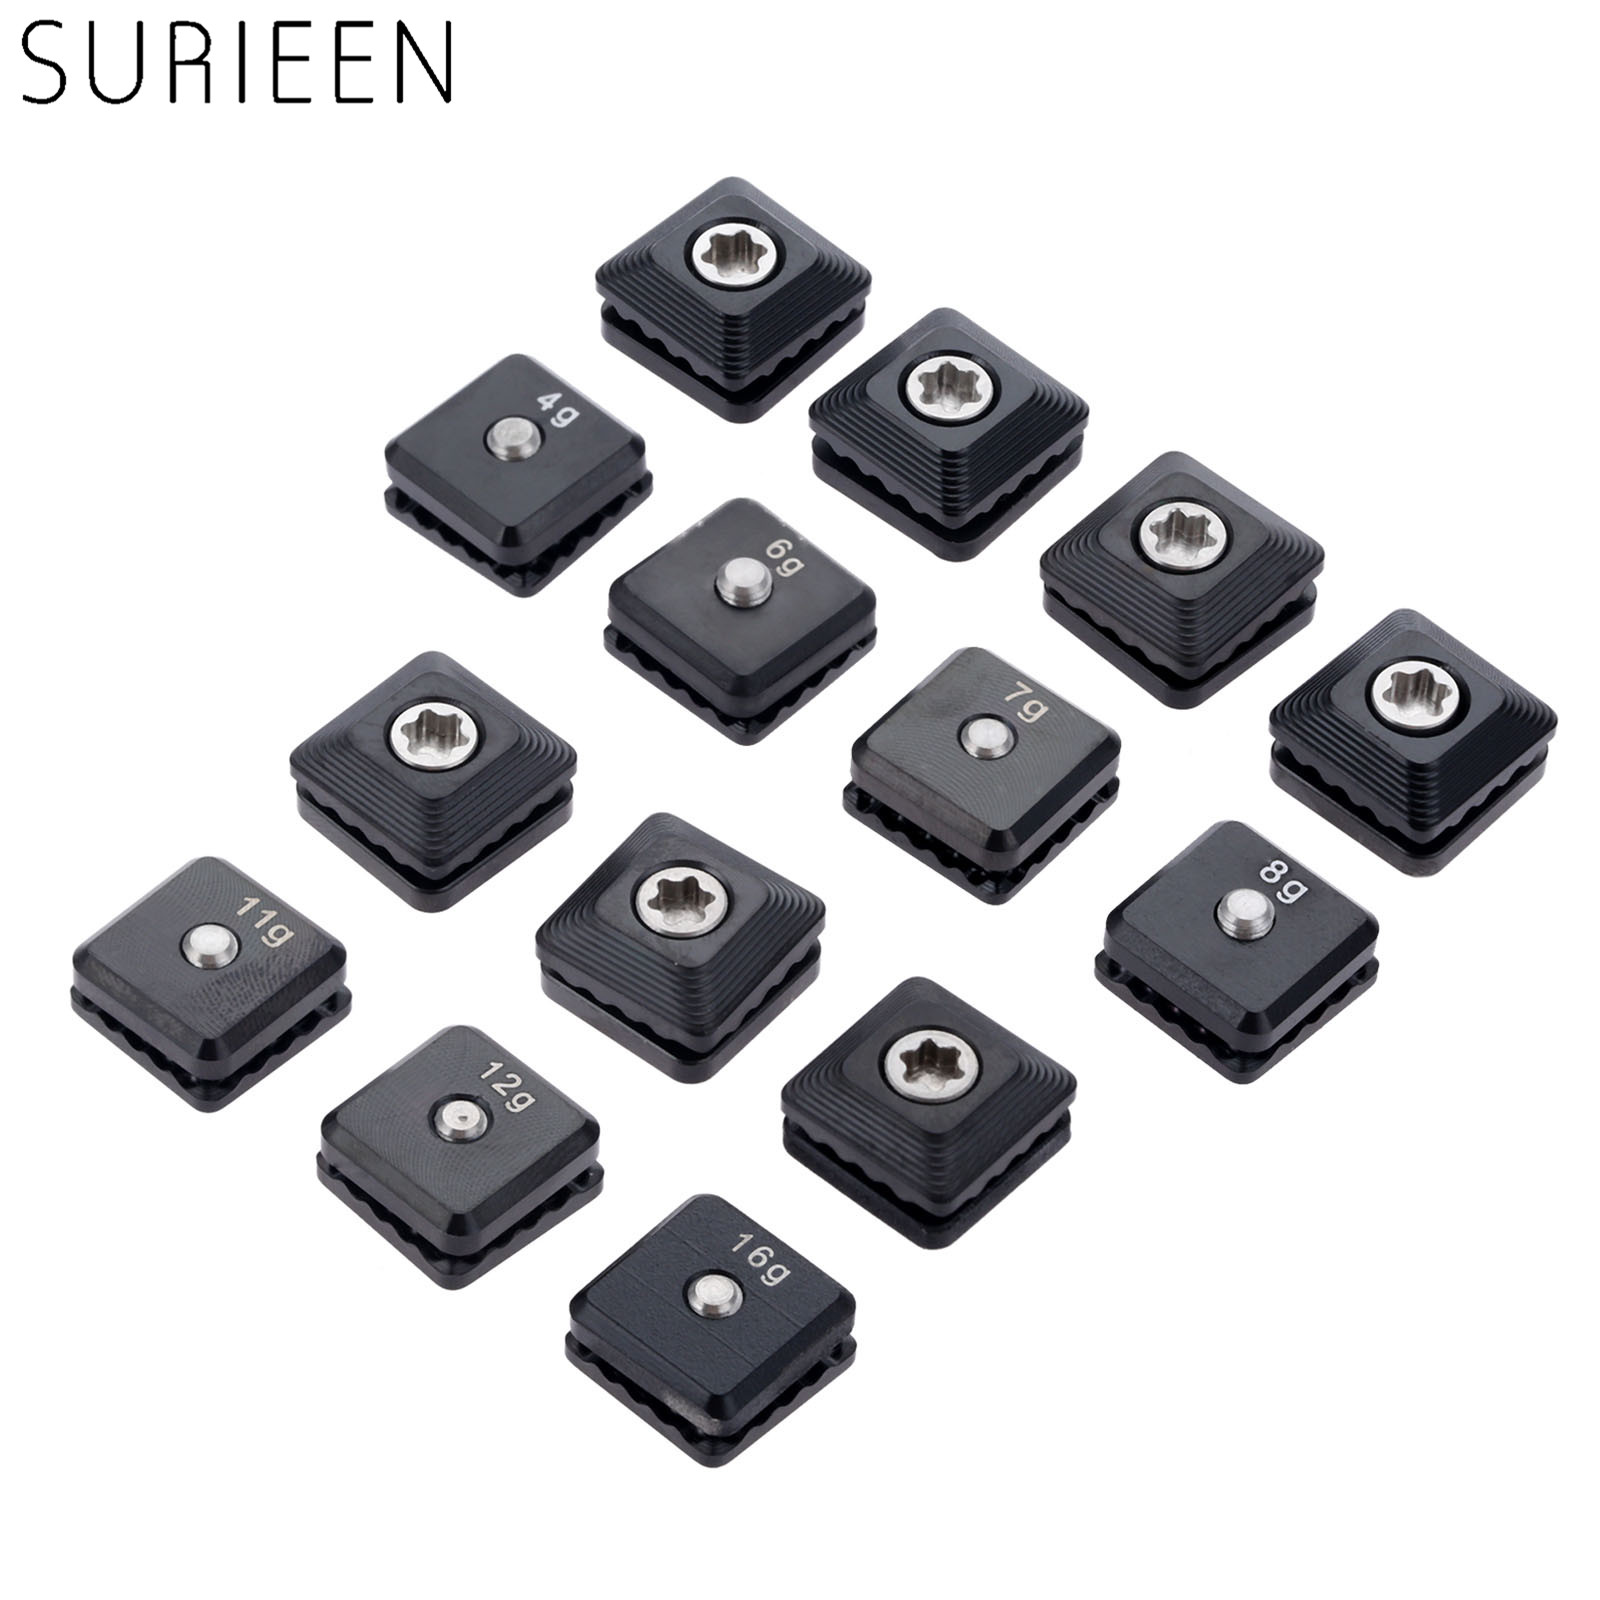 SURIEEN 1Pc Alloy Golf Weight Screw Replacement For M5 Driver Head Golf Club Head Accessories 4g 6g 7g 8g 11g 12g 16g